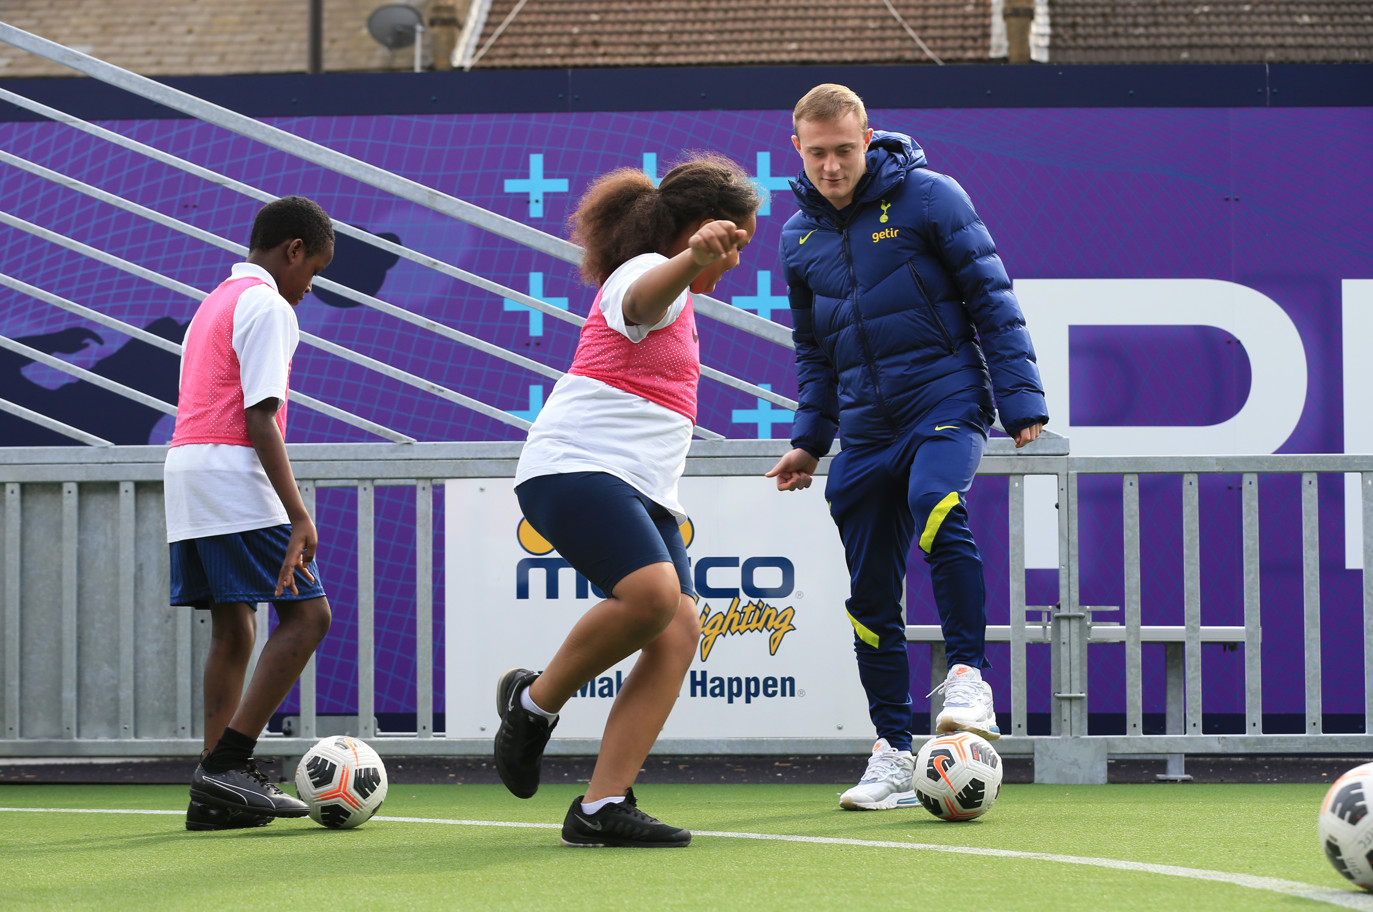 N17 arena – club unveils vibrant community space and talent id centre in the heart of tottenham (7)